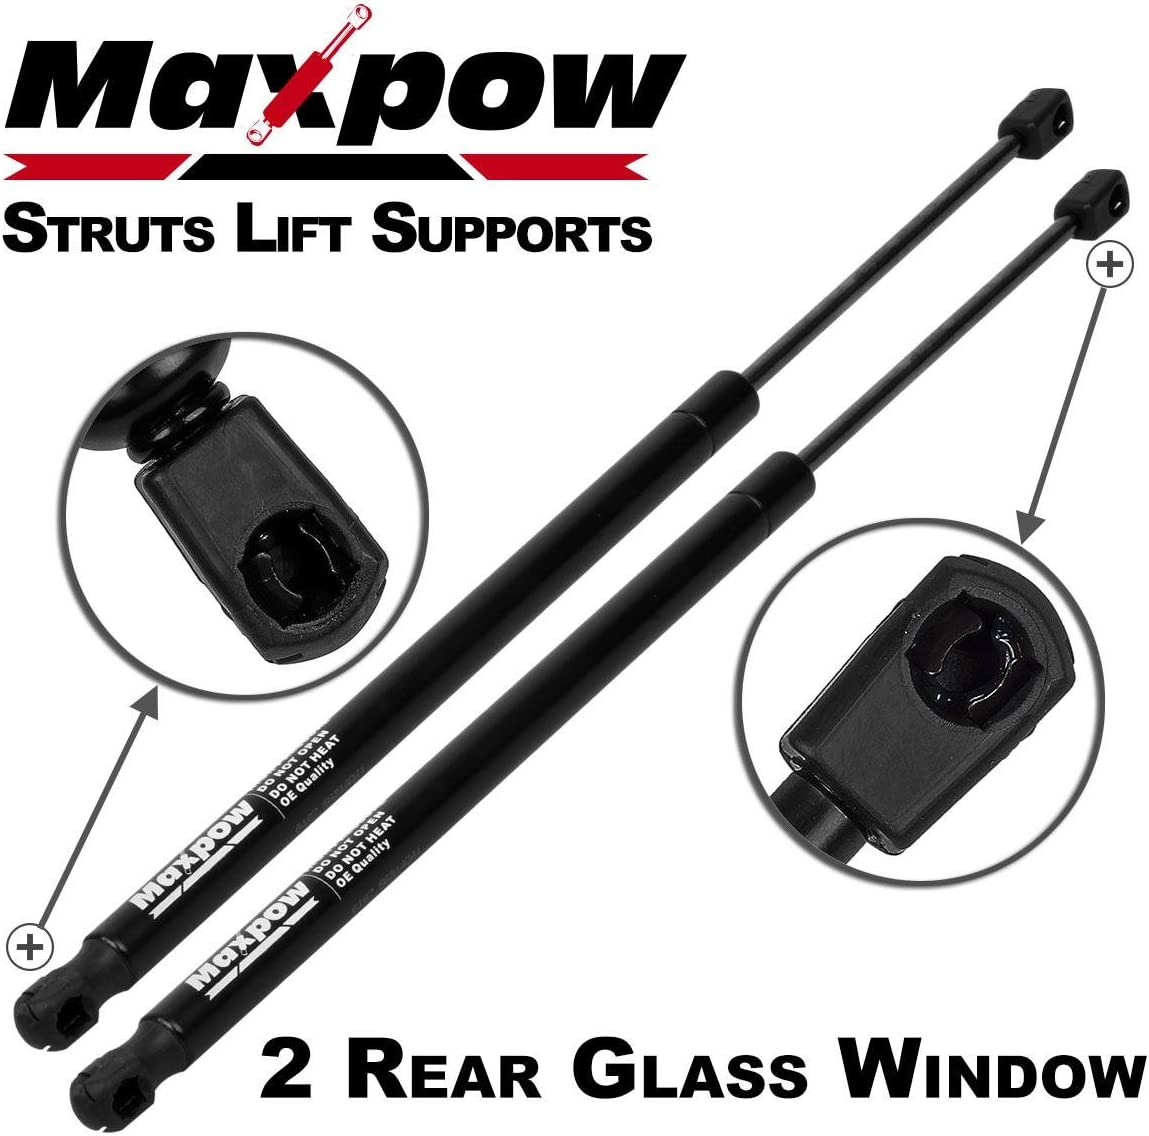 2 Pcs Universal Camper Rear Glass Window Lift Supports Struts CS1300-30 SE130P30 C16-04464A replacement 12.99 IN Extended 30 Lbs Force